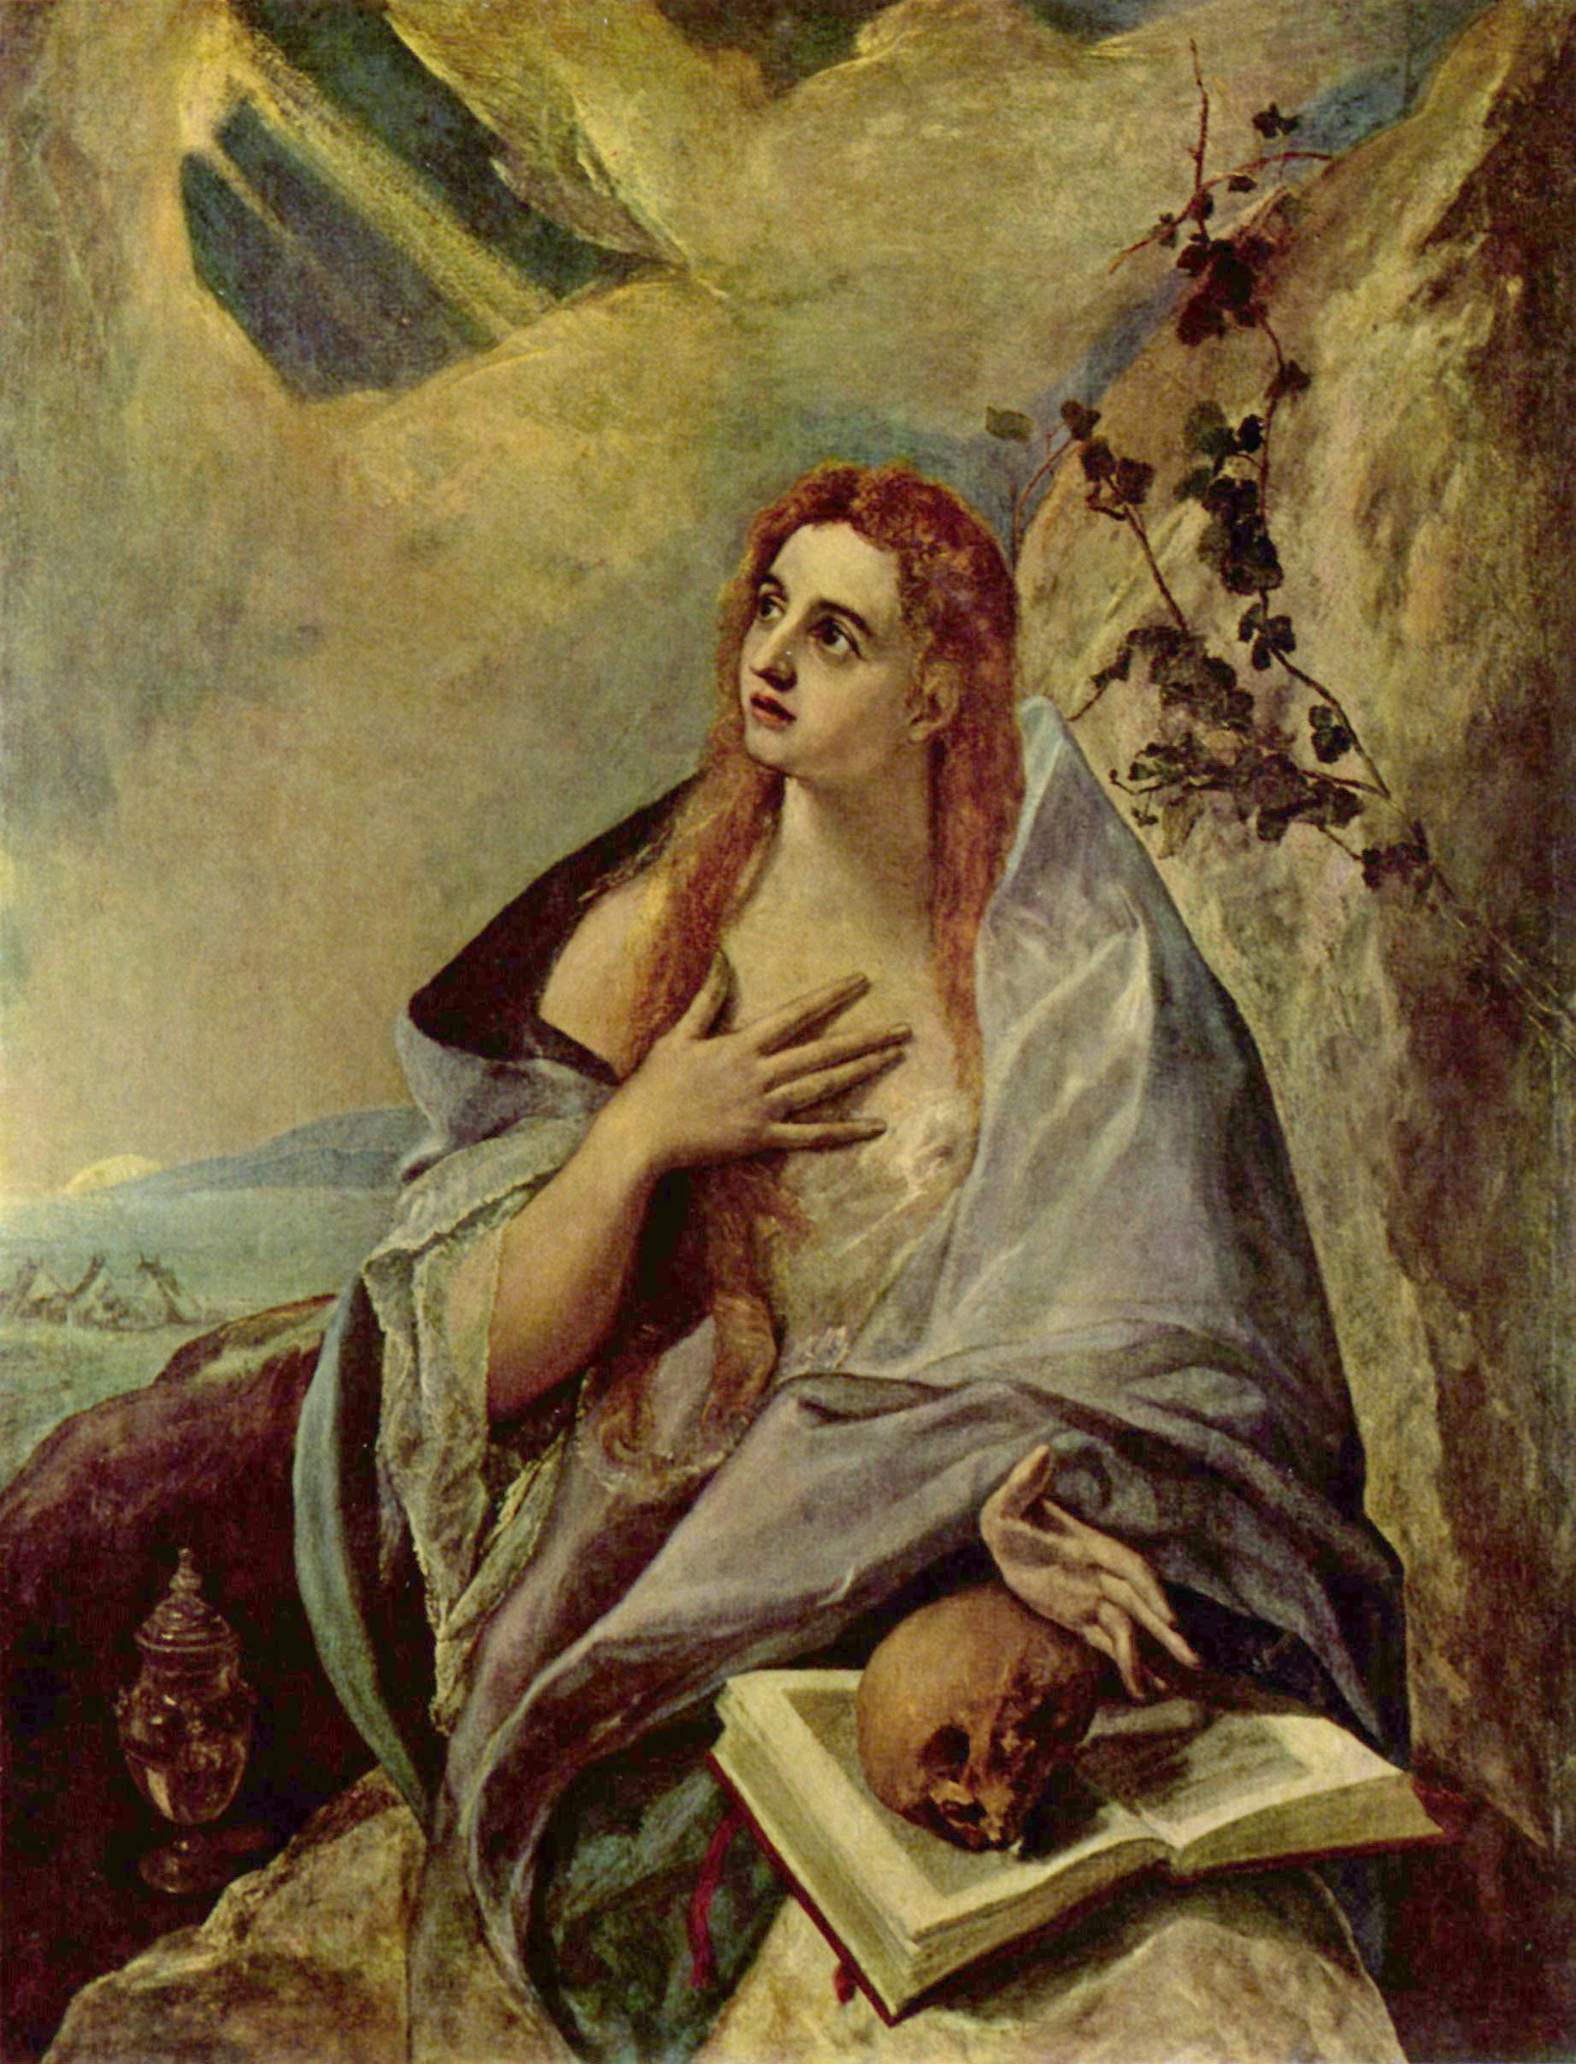 http://upload.wikimedia.org/wikipedia/commons/6/67/El_Greco_009.jpg